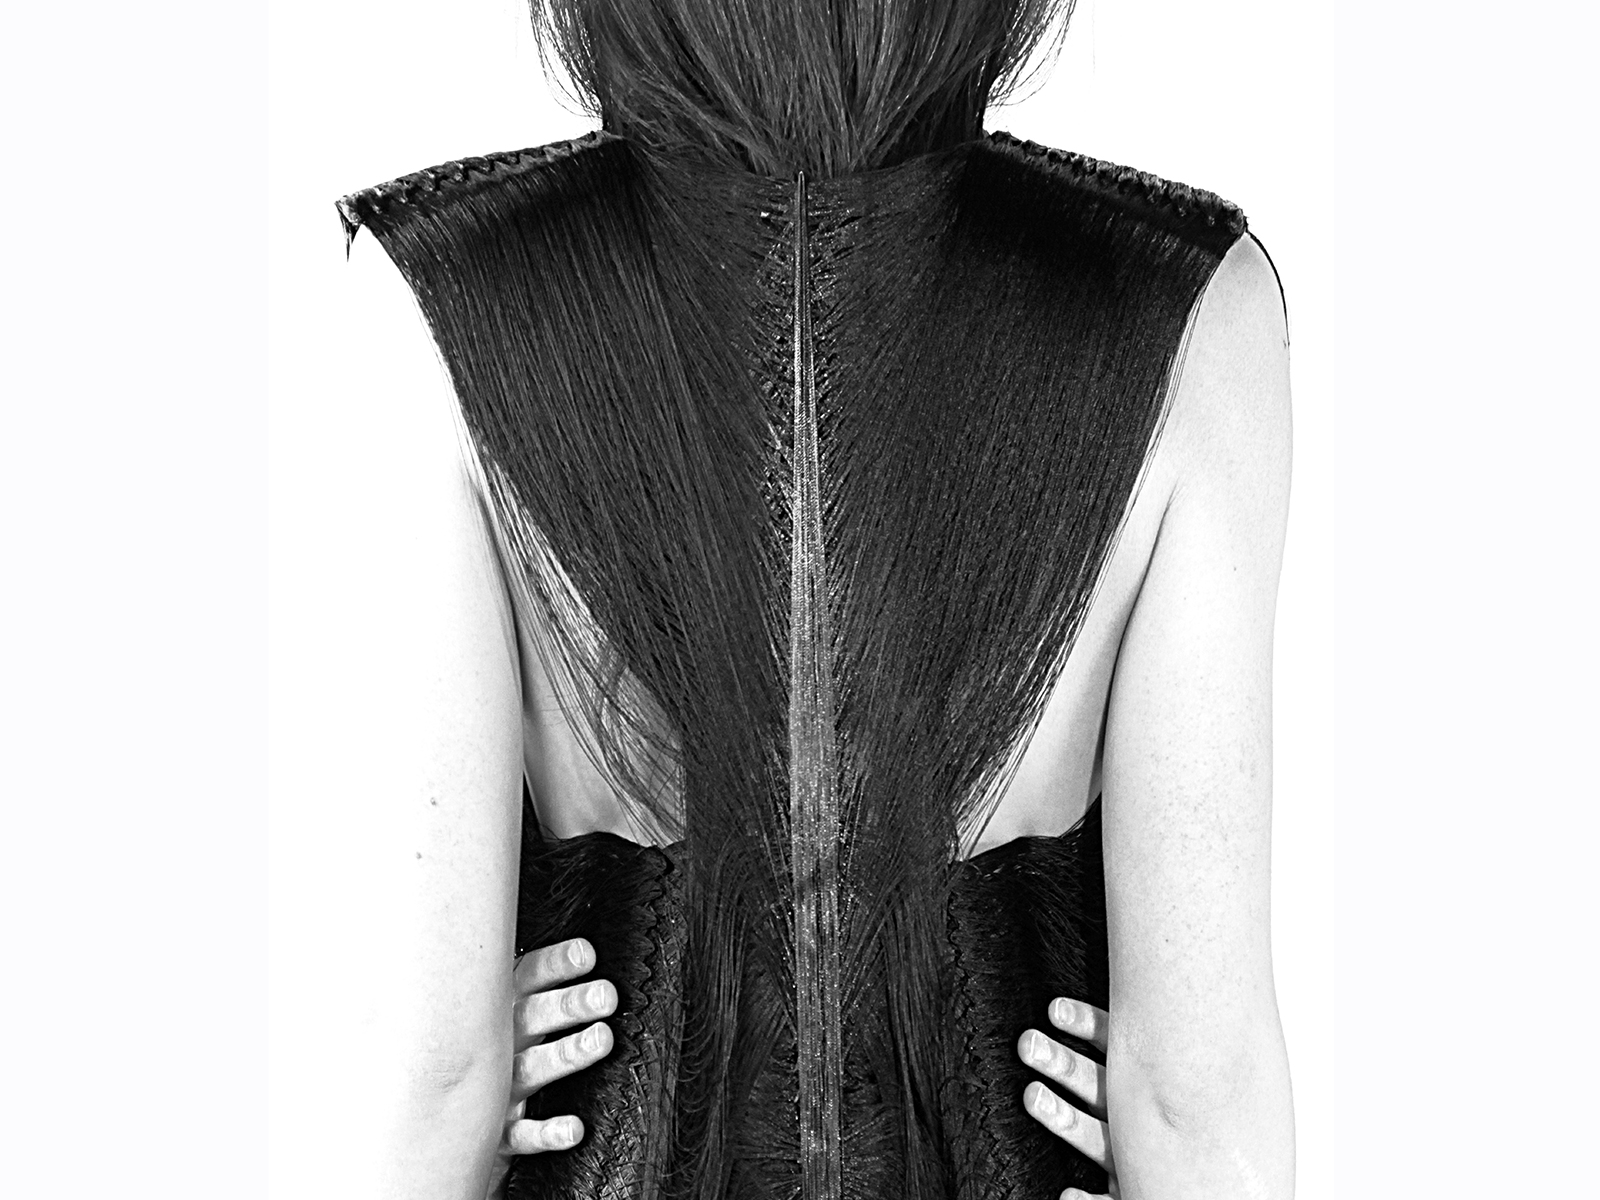 Back bone dress by Jeanne Vicerial - photo Doris Lanzman, model Julia Gault